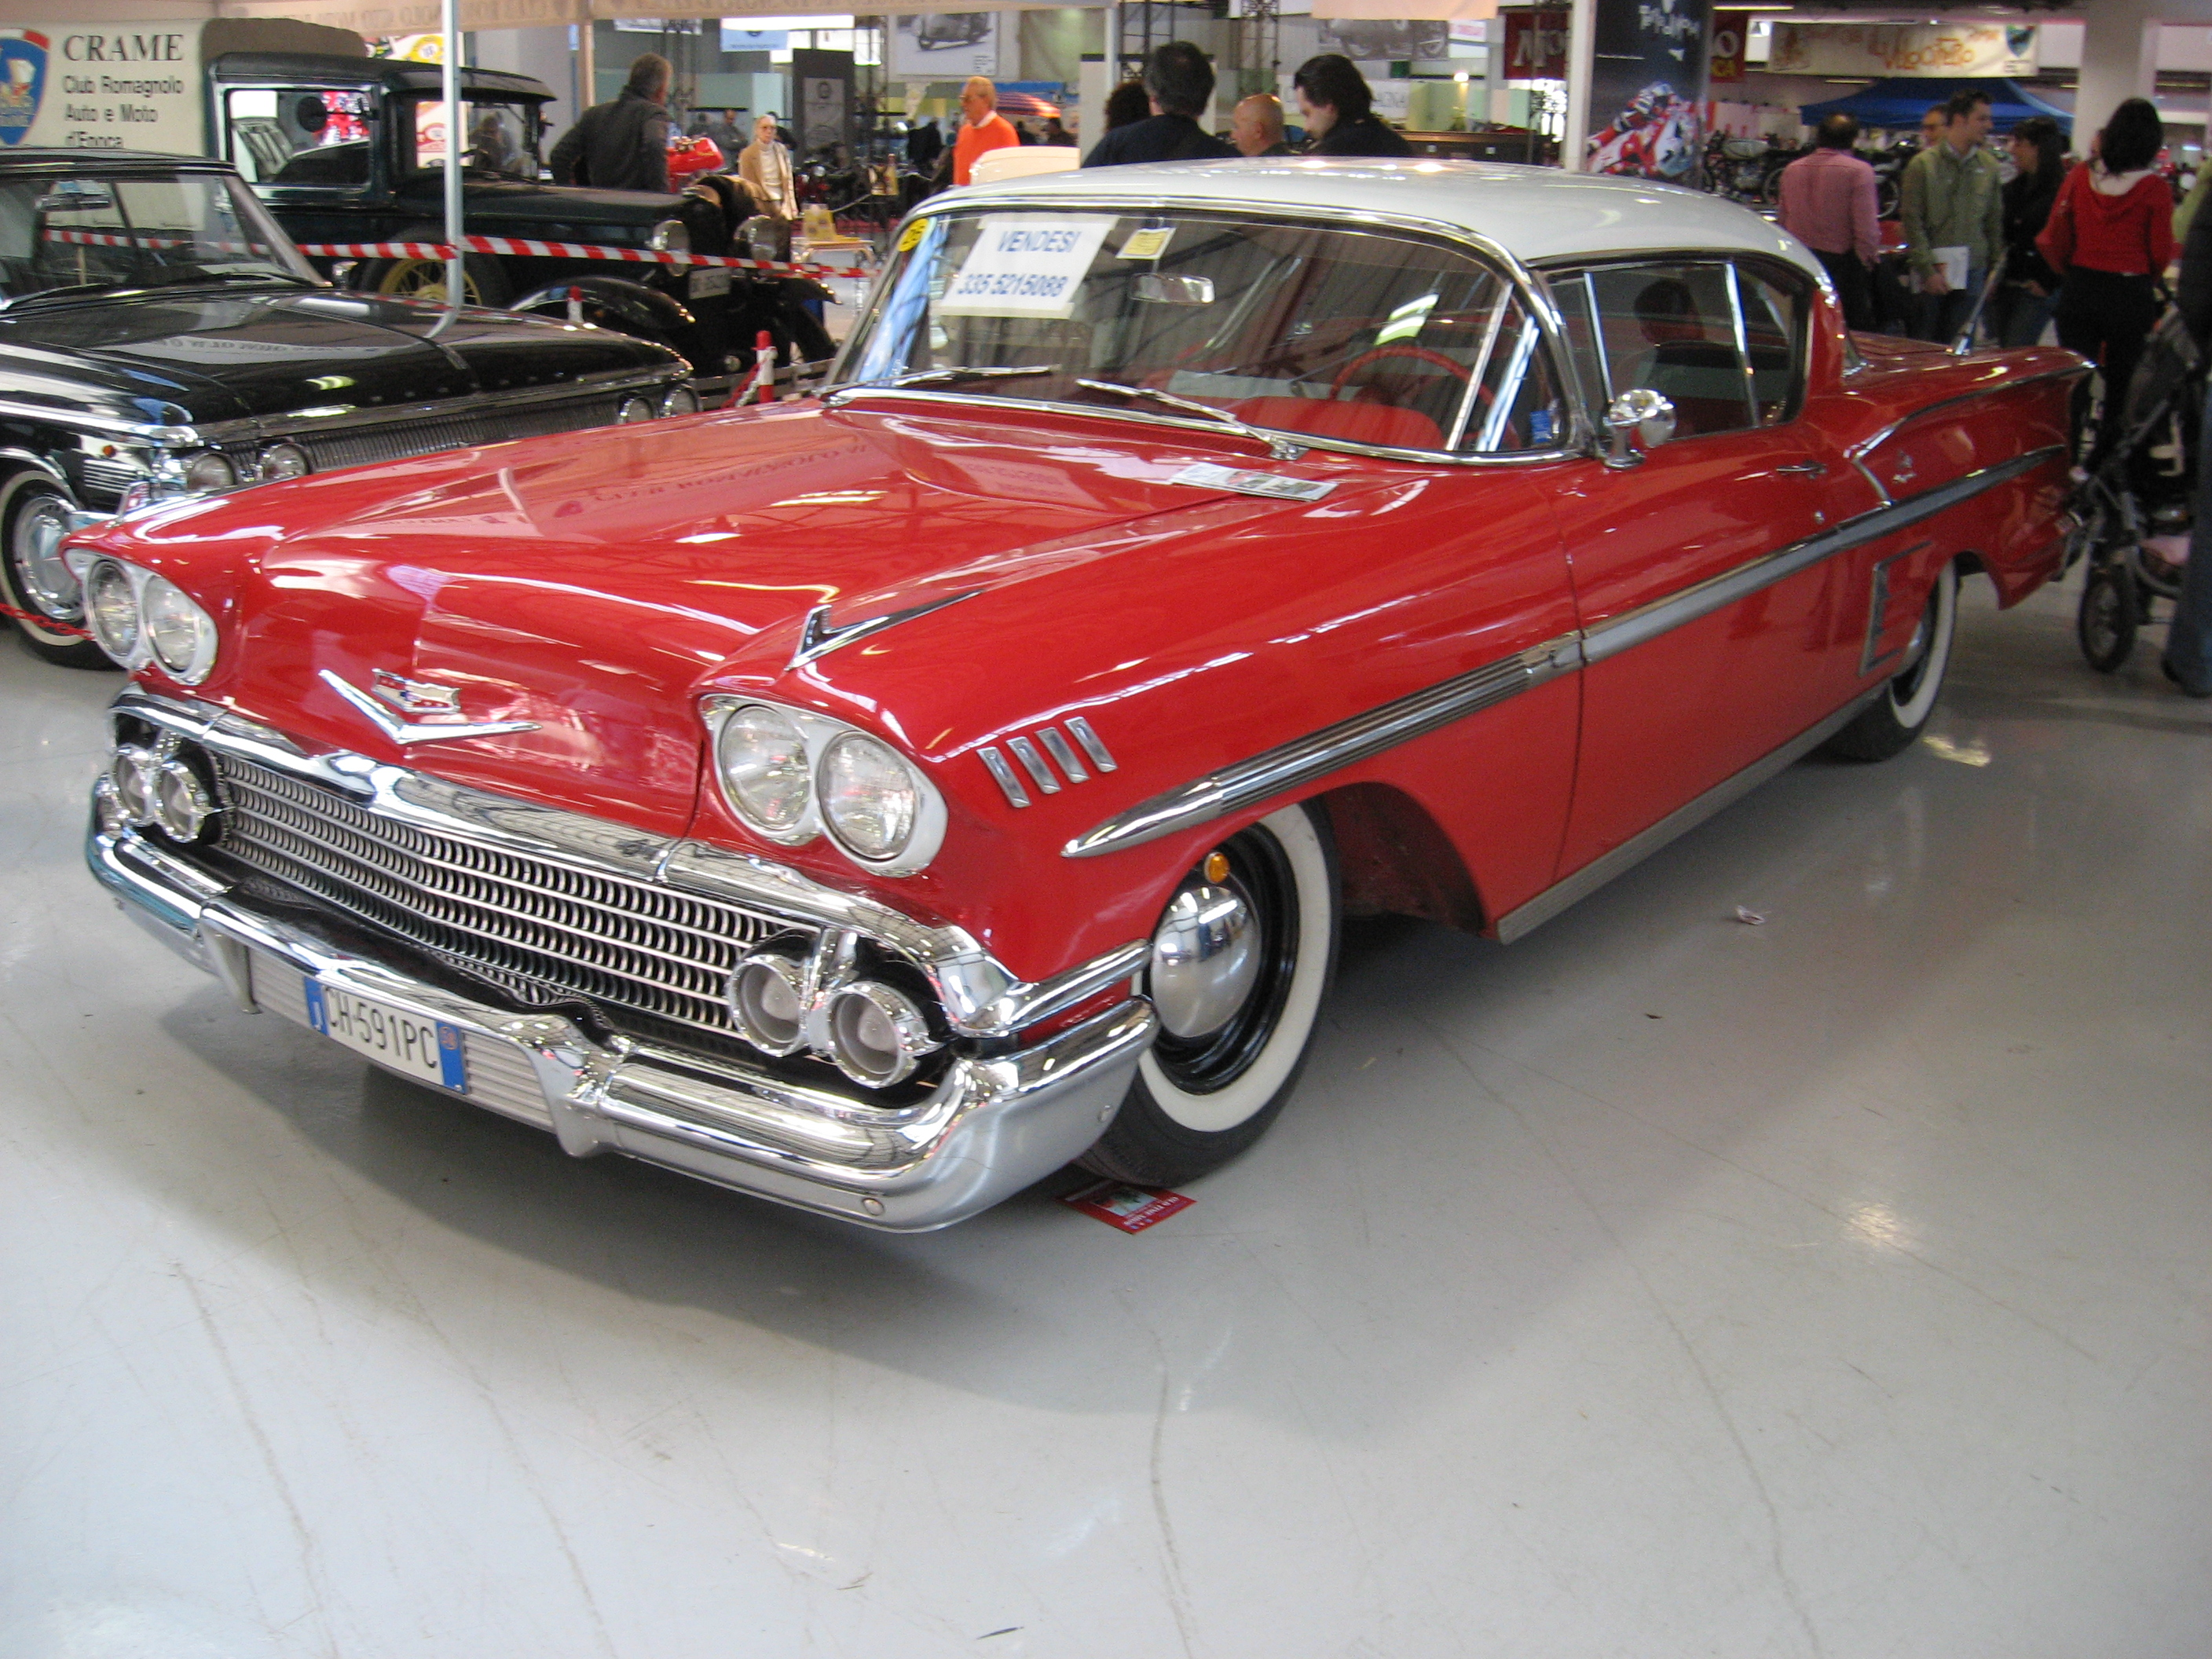 file 1958 chevrolet impala at the old time show in. Cars Review. Best American Auto & Cars Review